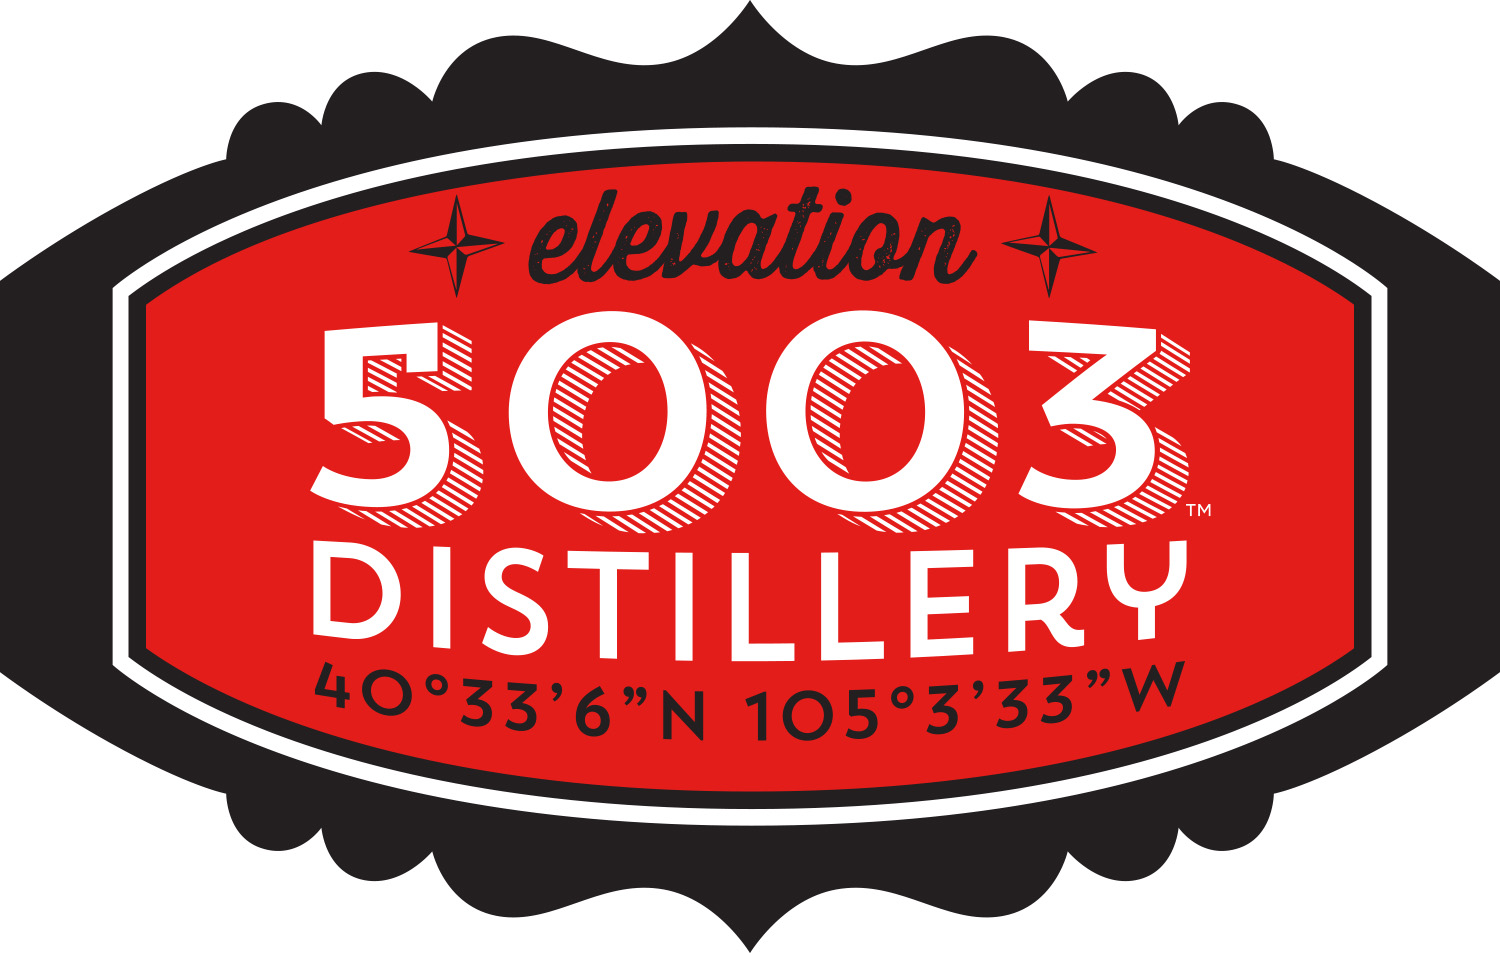 Elevation 5003 Distillery